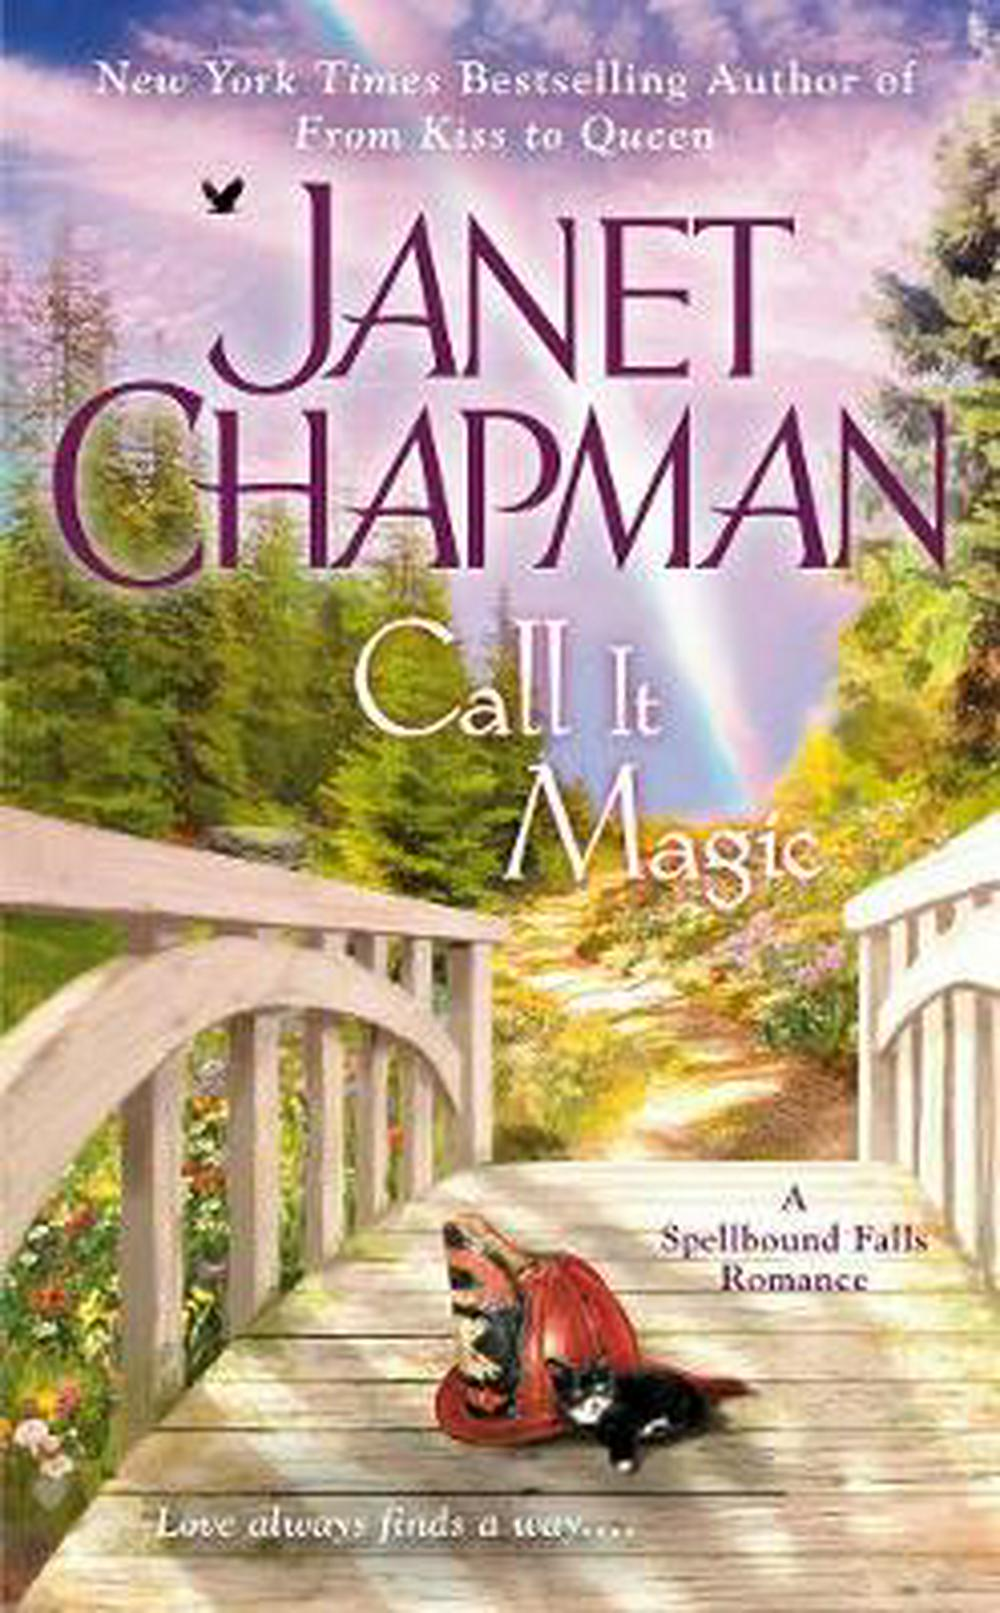 Call It Magic (Spellbound Falls Romance)